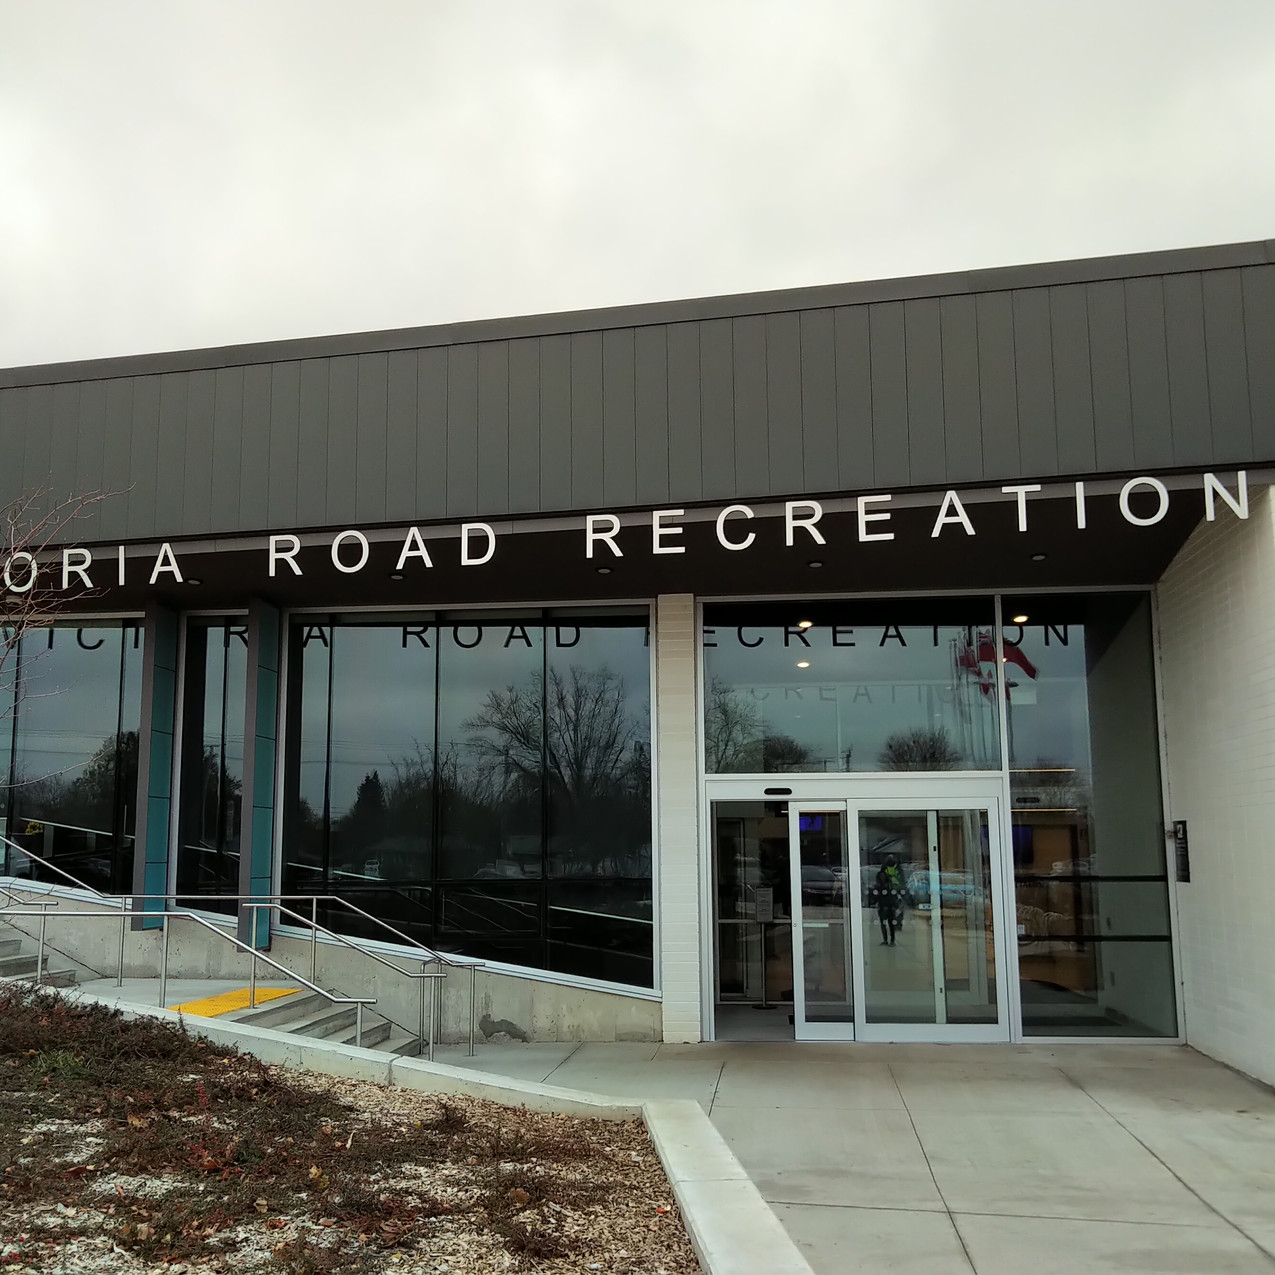 Victoria Road Recreation Centre